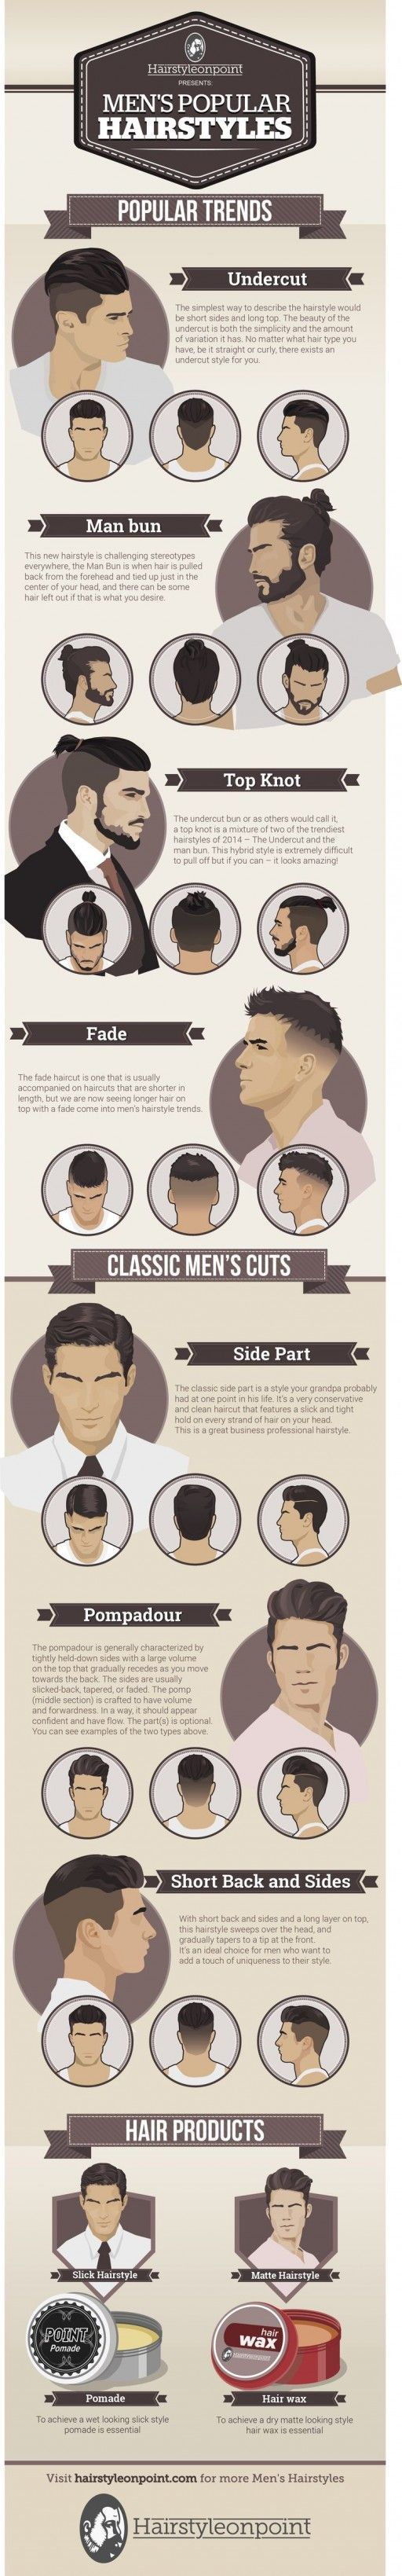 men's hairstyles groom the beauty department/ too bad I'm bald.